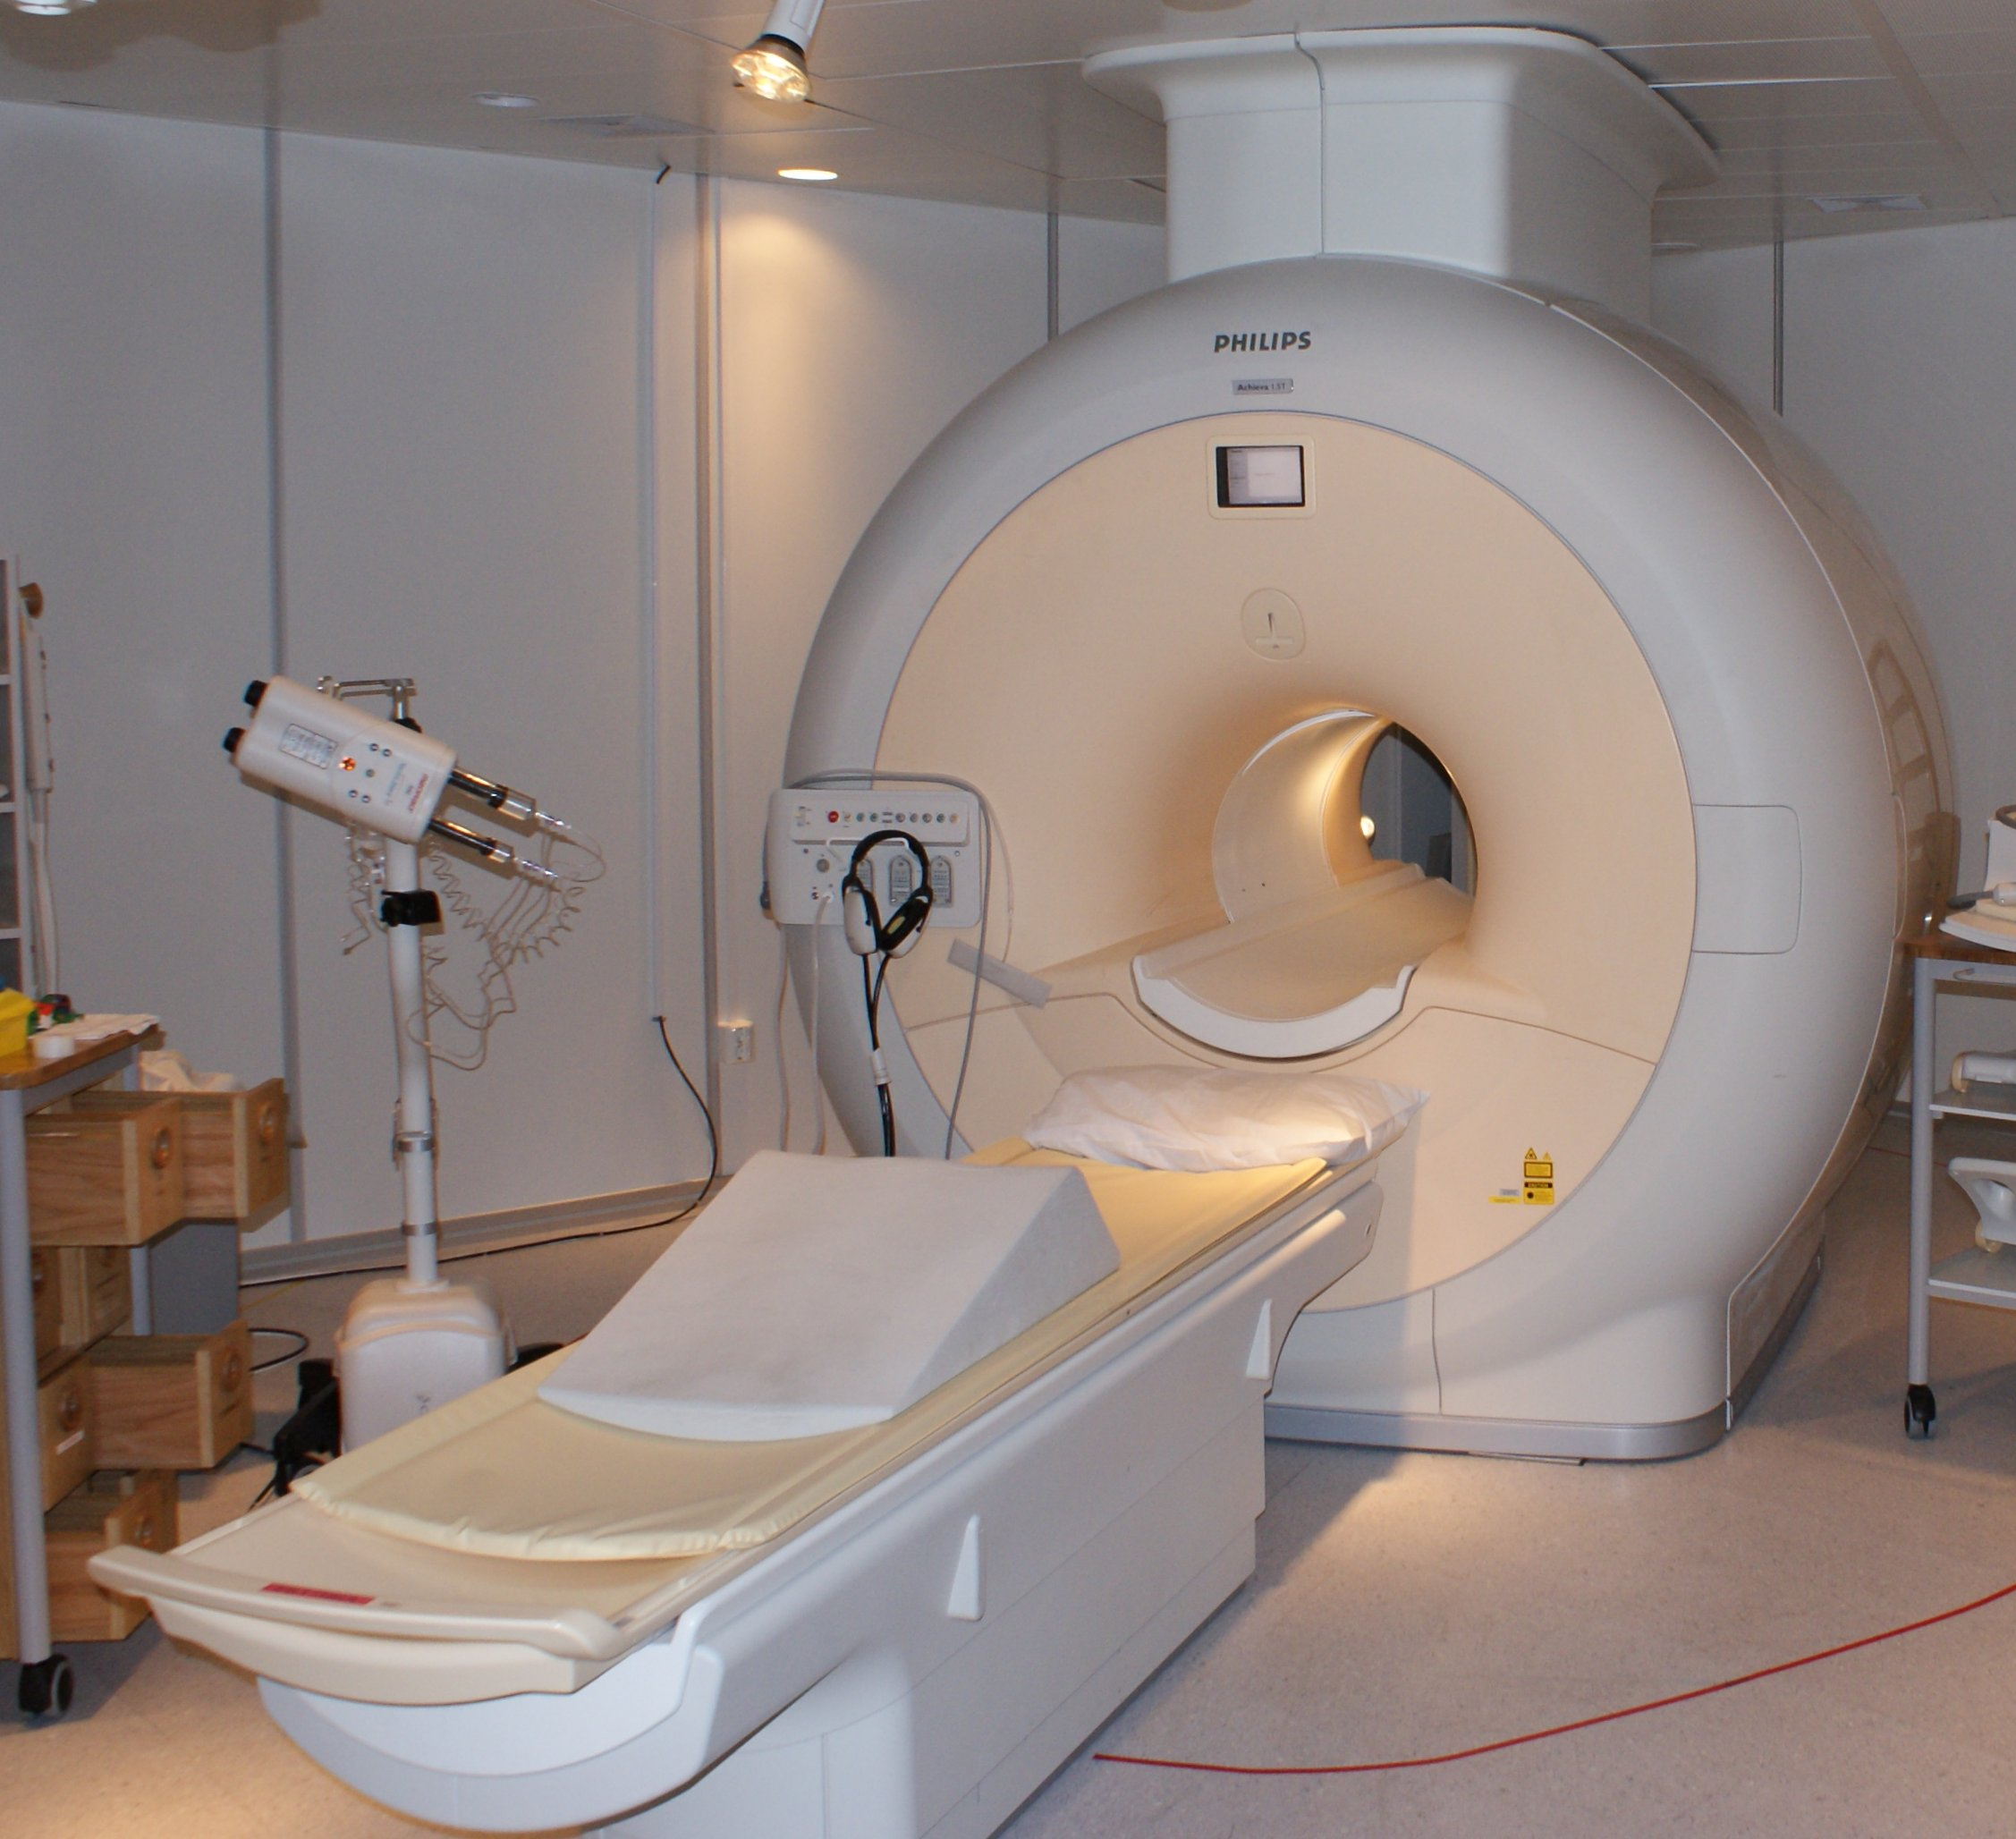 upload.wikimedia.org_wikipedia_commons_e_ee_mri-philips.jpg